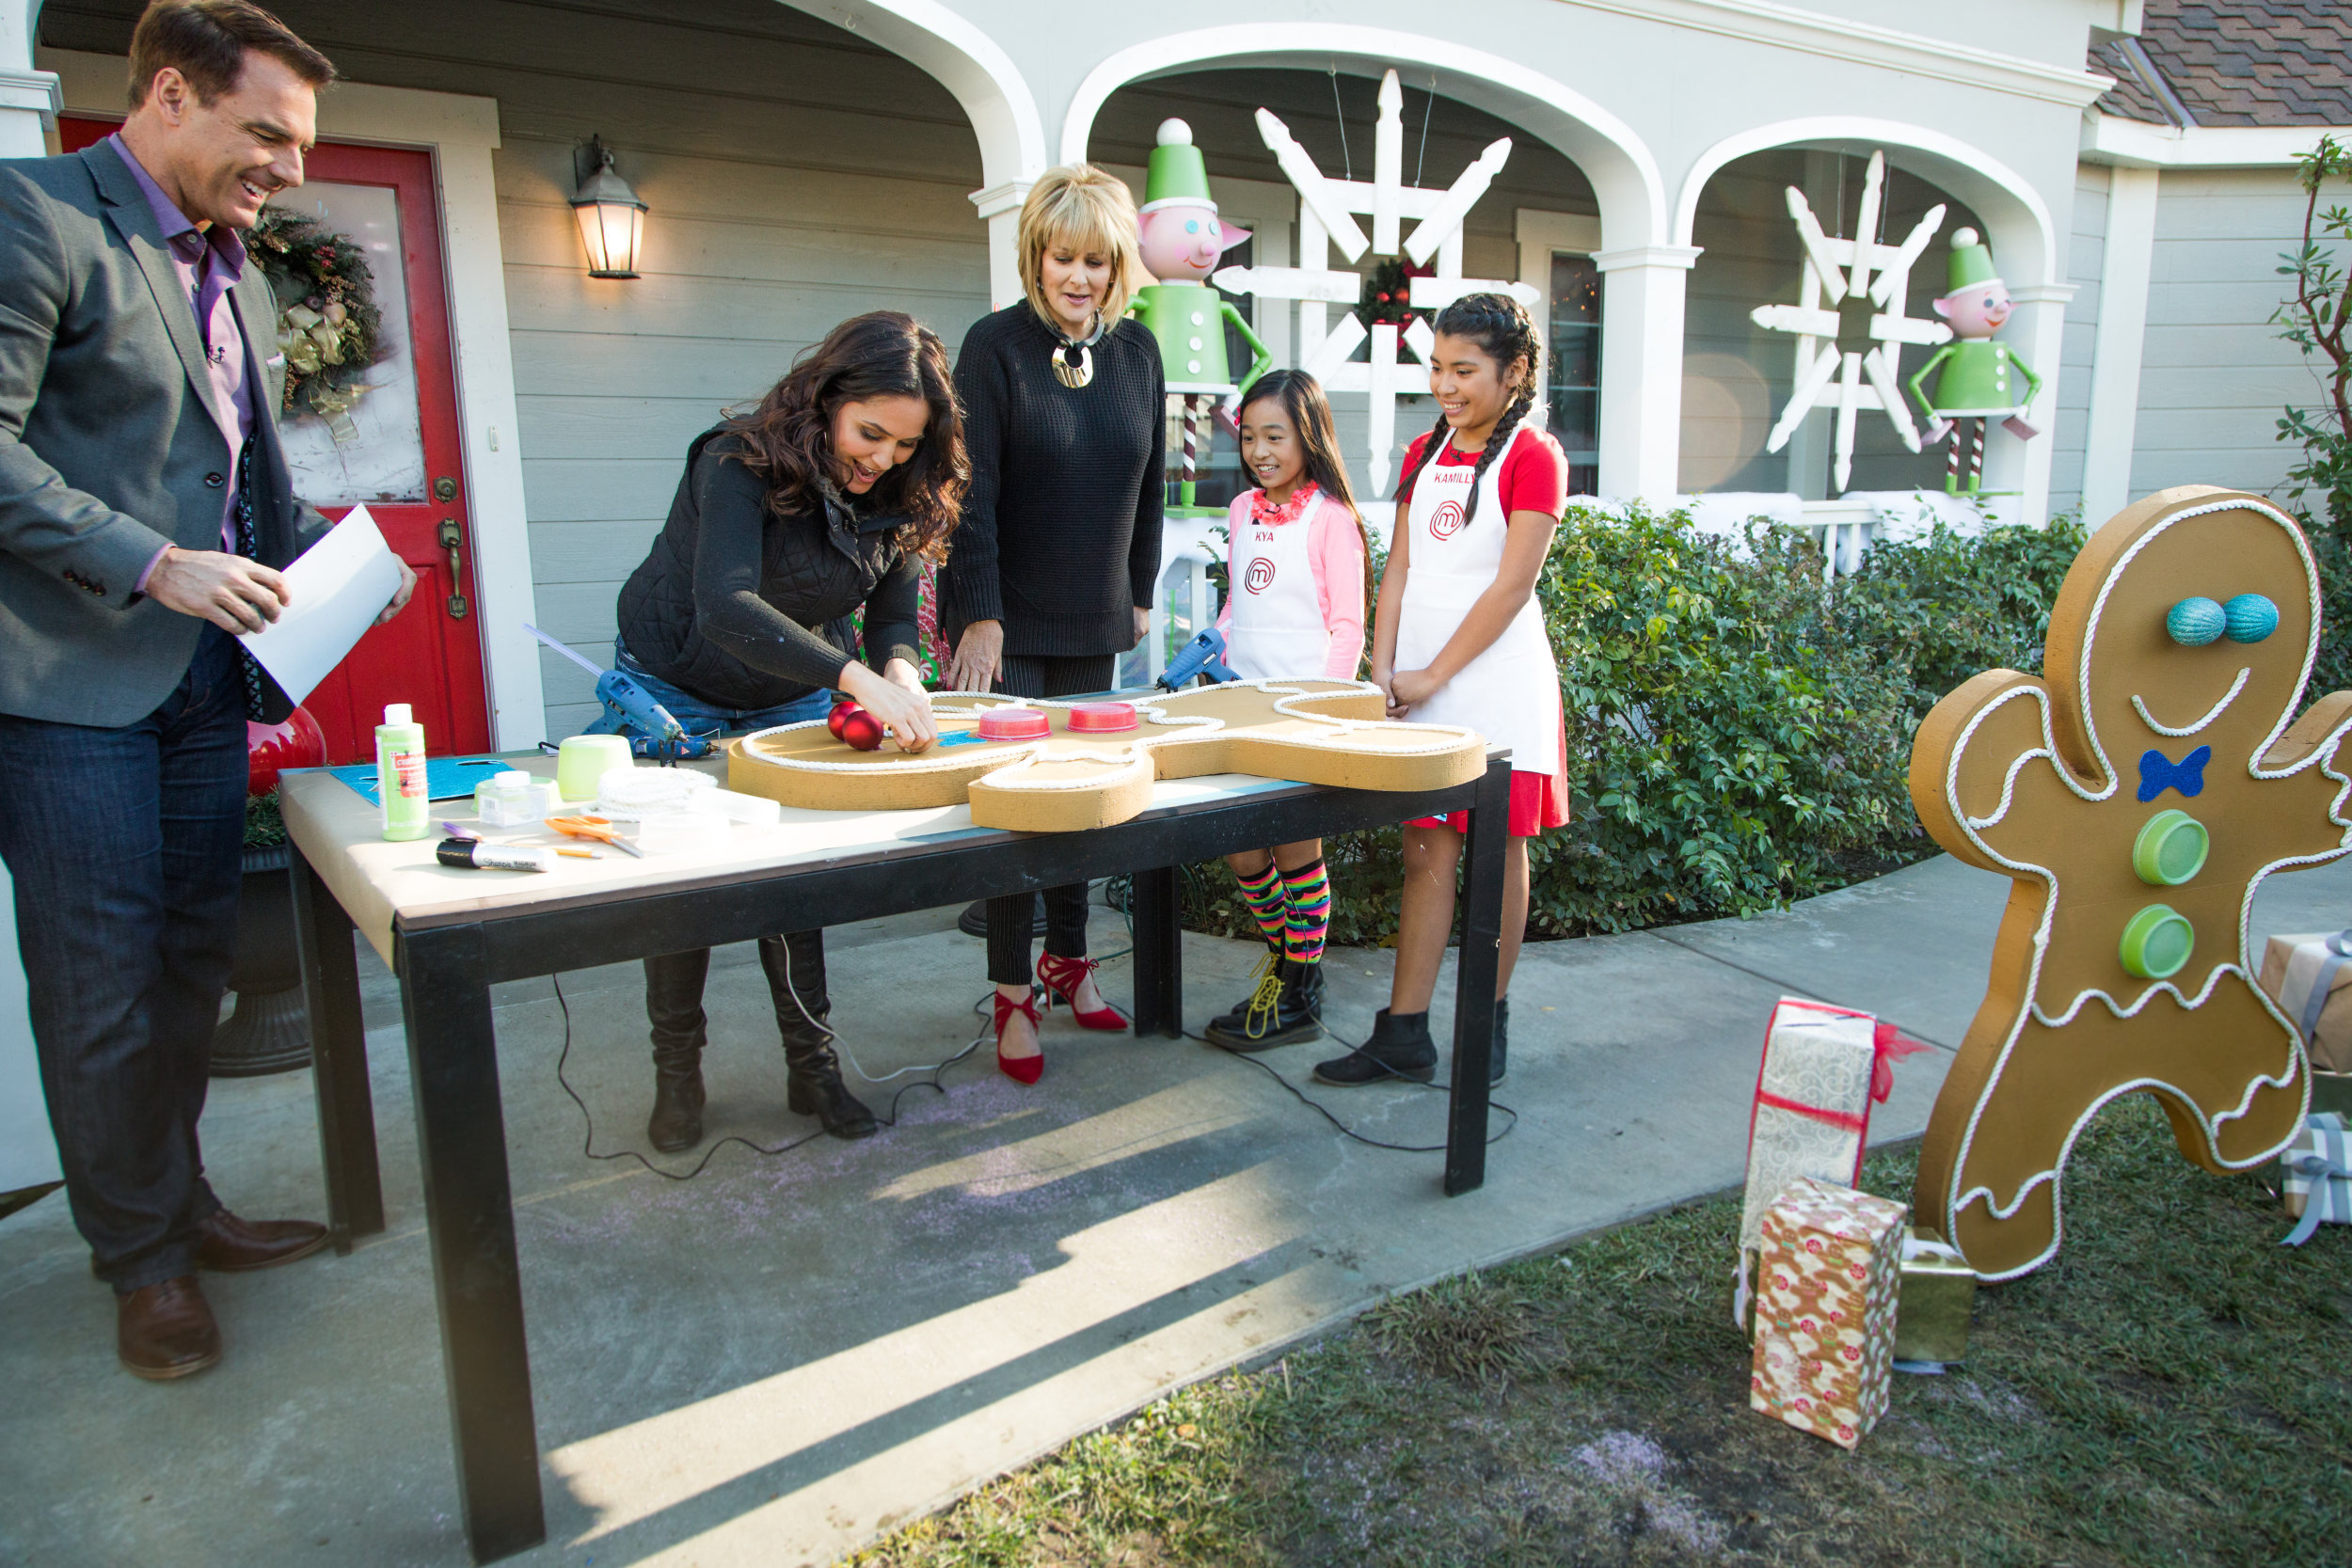 How To Diy Front Yard Gingerbread Man Home Family Hallmark Channel